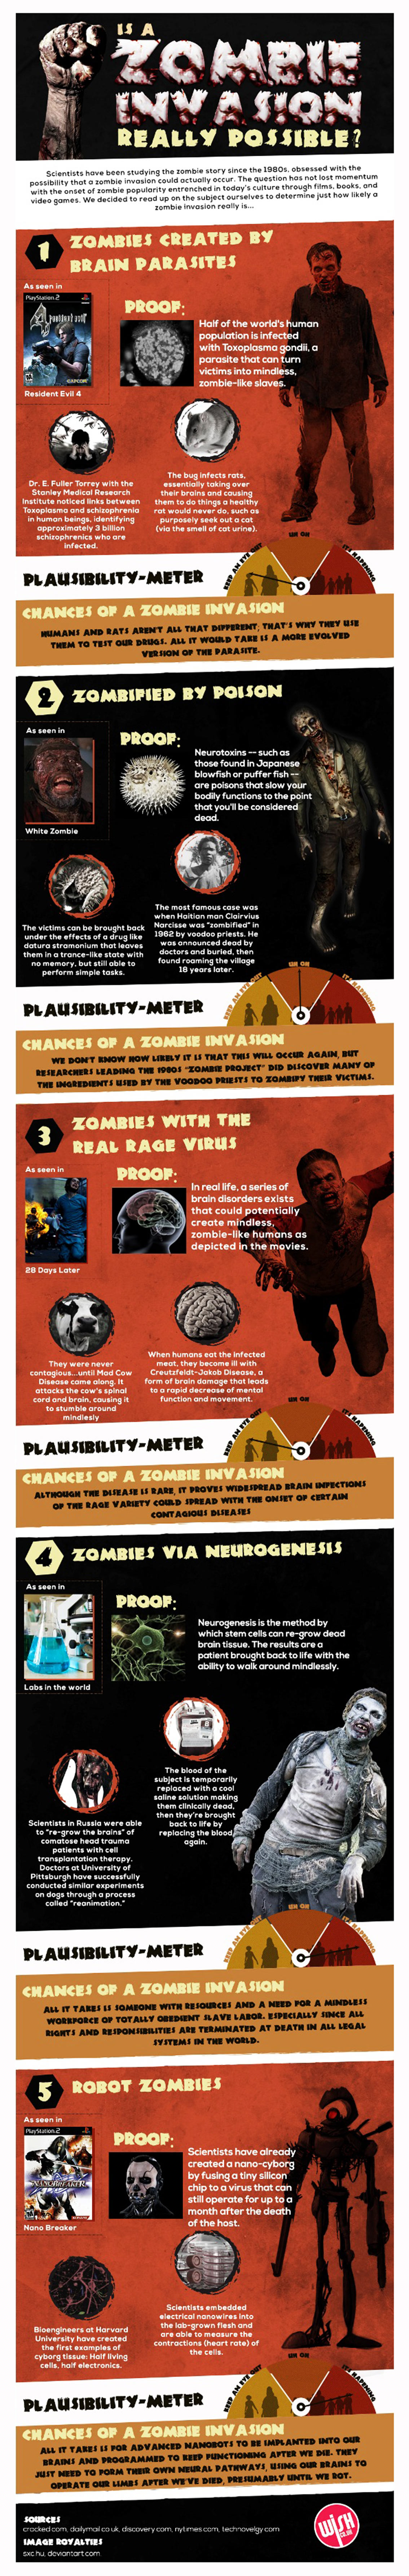 Possibility of a Zombie Apocalypse Infographic